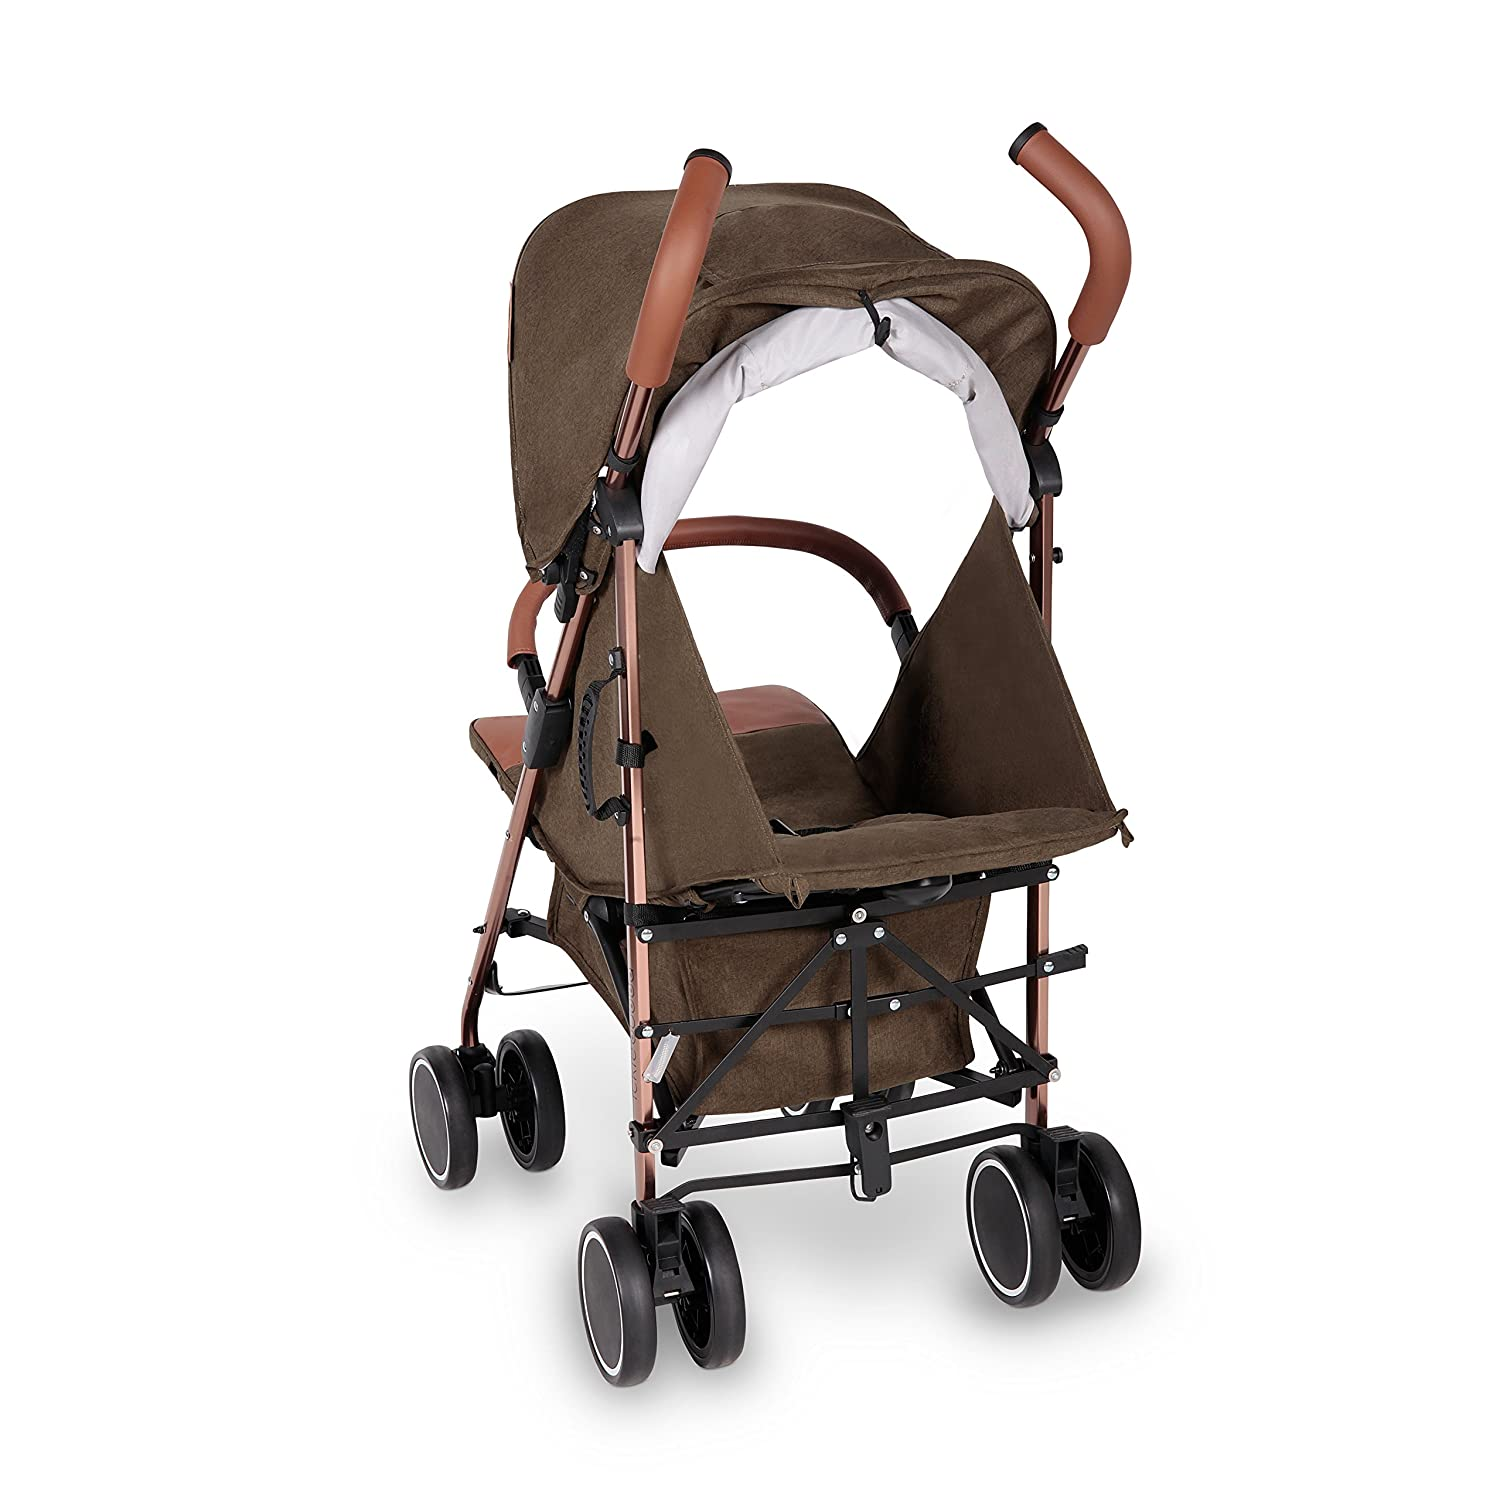 UPF 50+ Extendable Hood Compact Fold Technology for Easy Transport and Storage Lightweight Stroller Pushchair Footmuff and Rain Cover Discovery Max Khaki//Rose Gold Ickle Bubba Baby Strollers